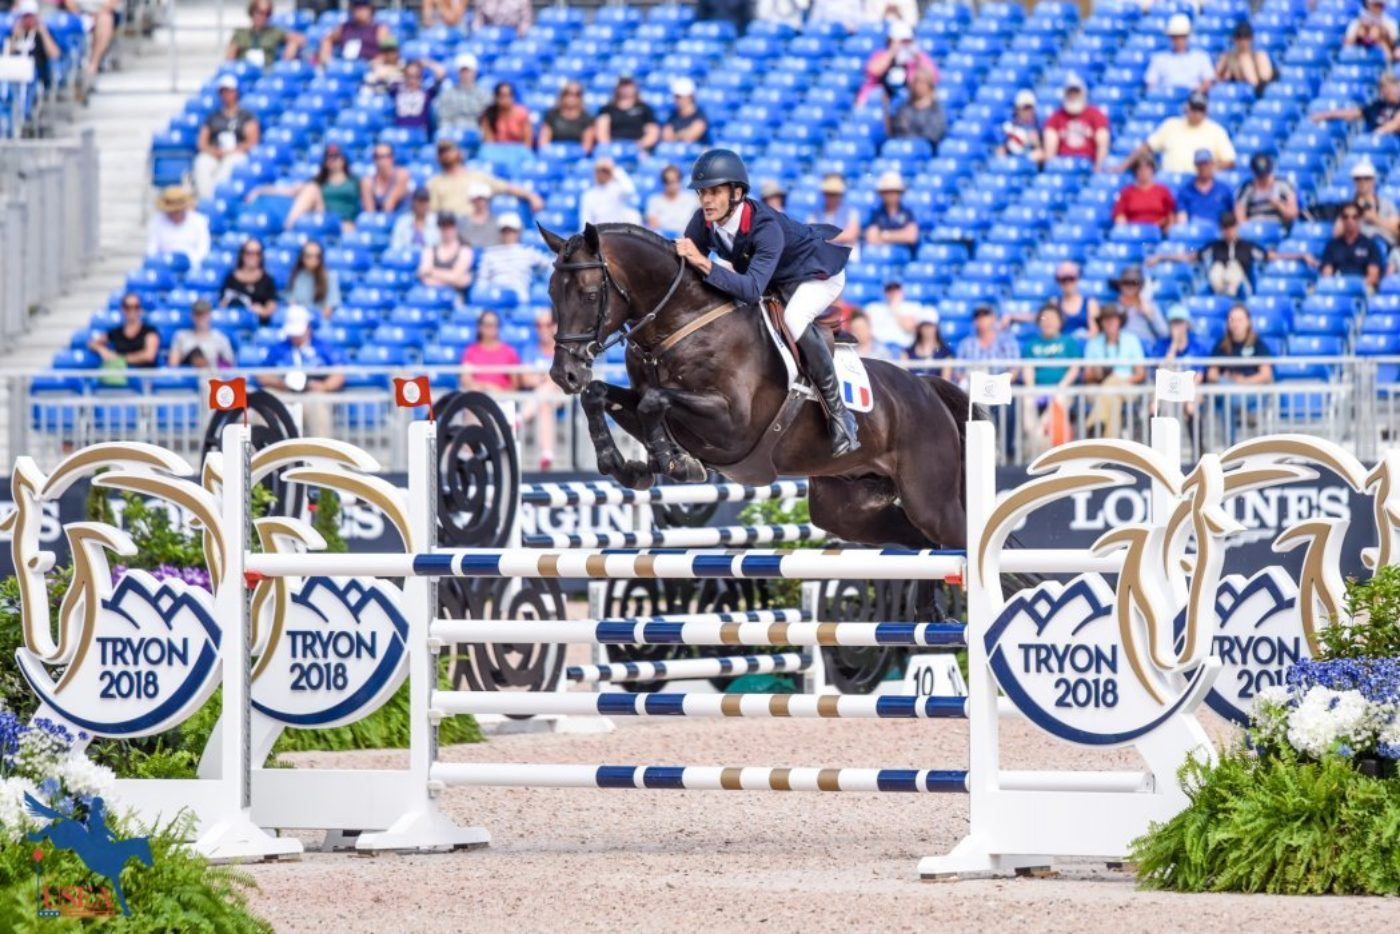 18th - Sidney Dufresne and Tresor Mail (FRA)